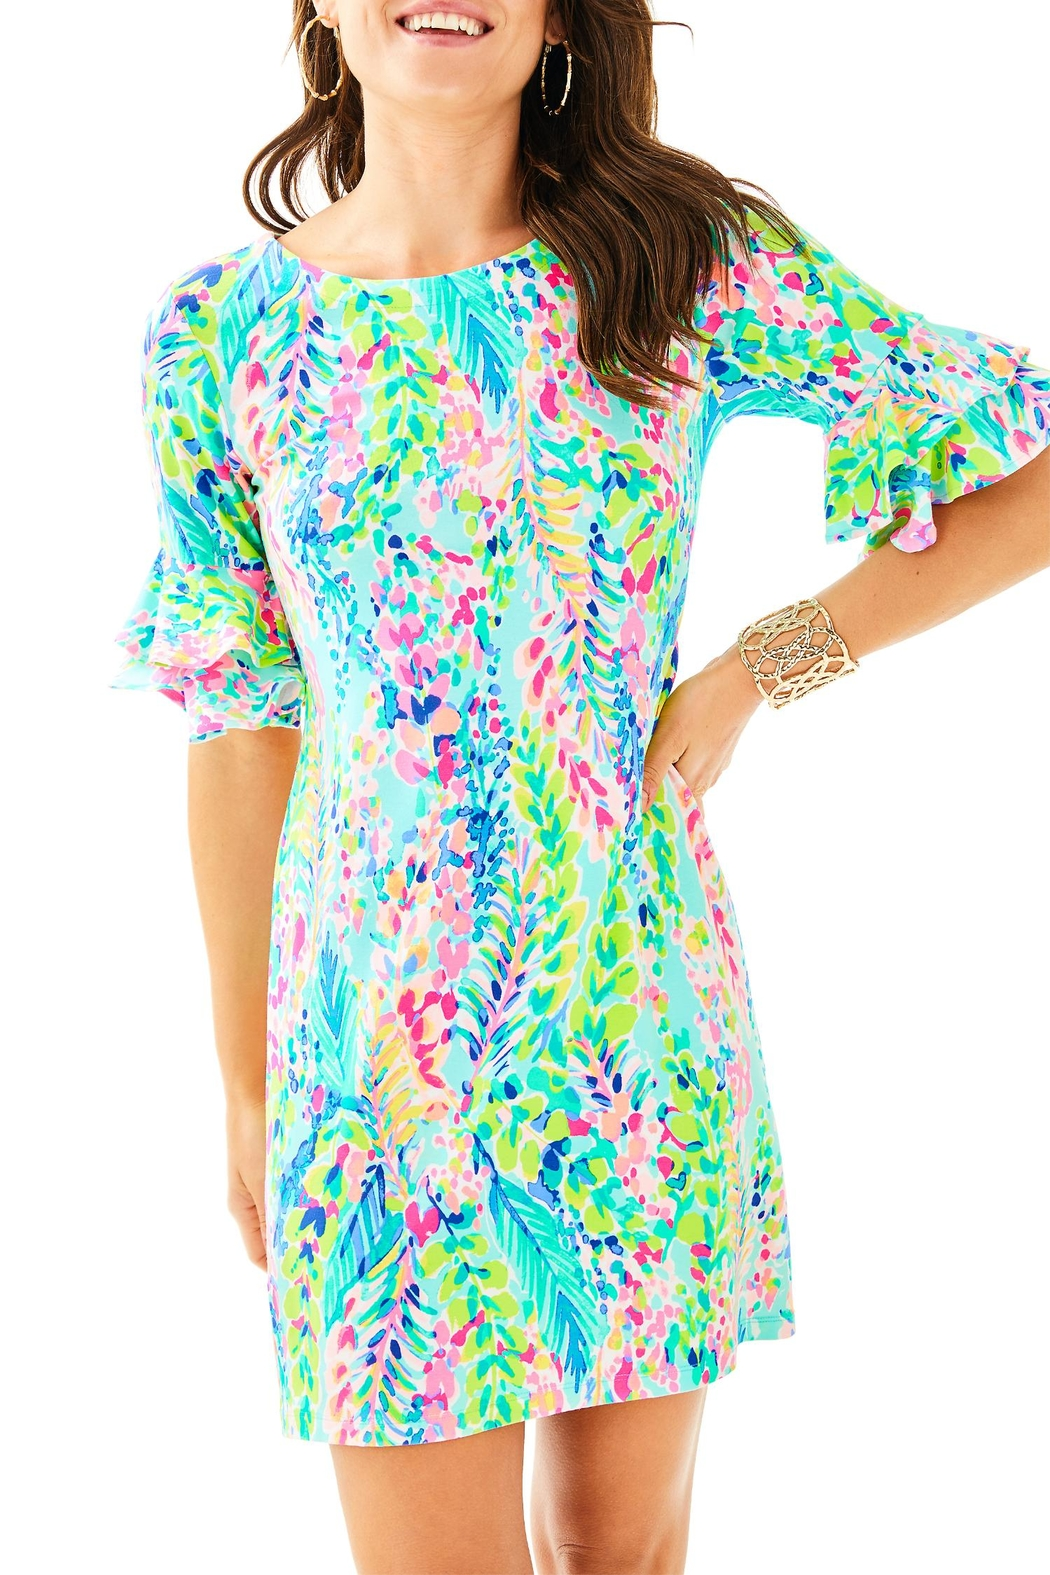 Lilly Pulitzer Lula Dress from Sandestin Golf and Beach Resort by ...